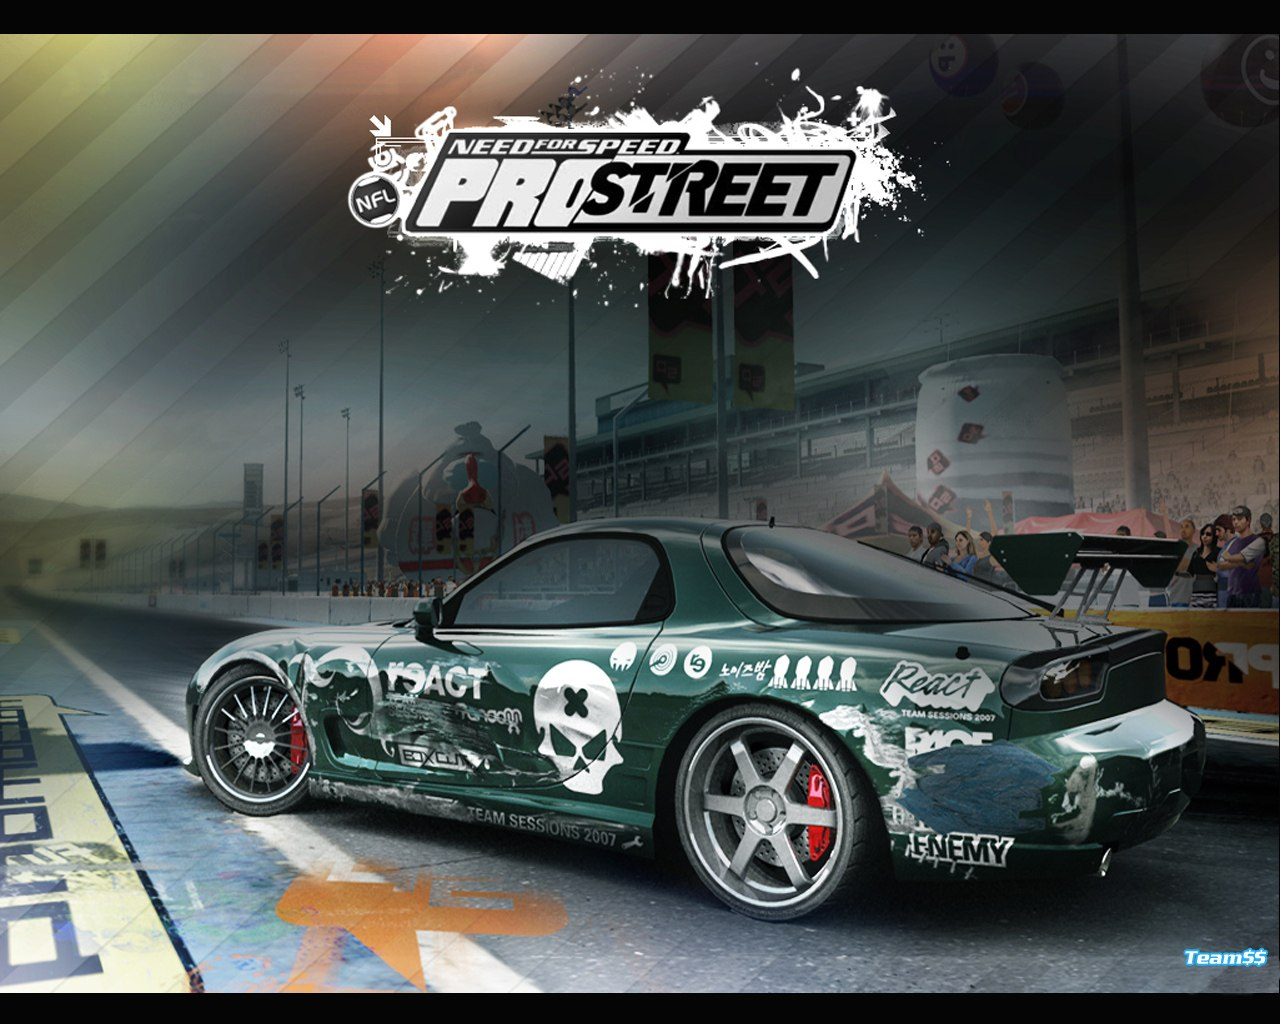 http://3.bp.blogspot.com/-ToNsIuILSQQ/T17pxDhAfgI/AAAAAAAAI_s/eokOAzzMpdM/s1600/need-for-speed-new-wallpaper-952.jpg